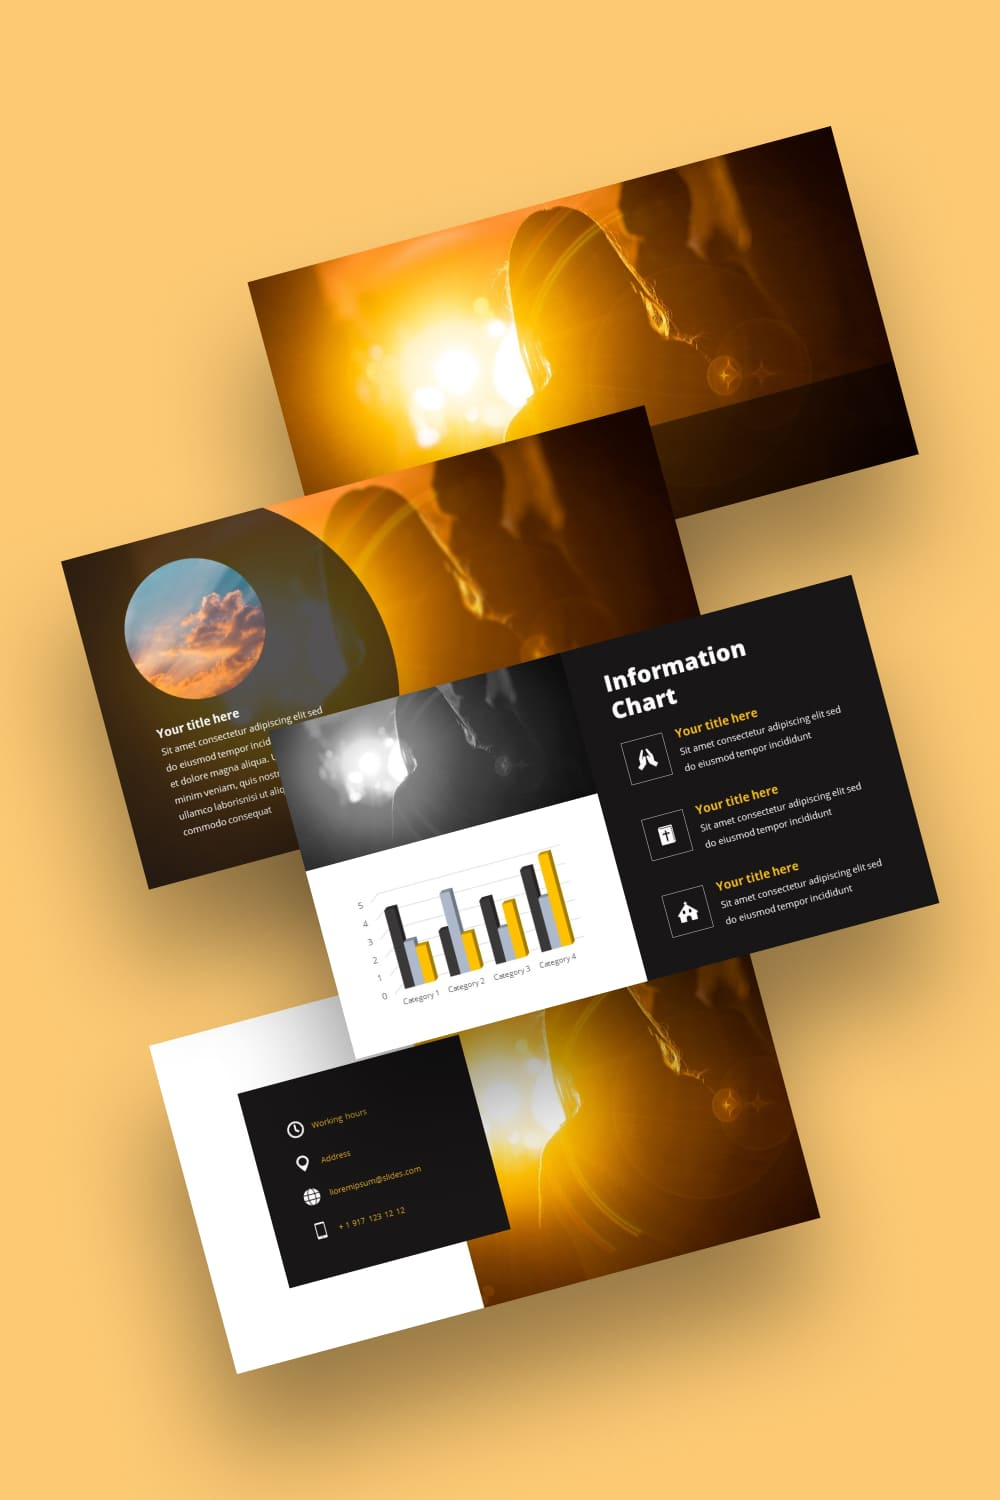 Free Powerpoint Background Worship Light. Great bright and colorful template.